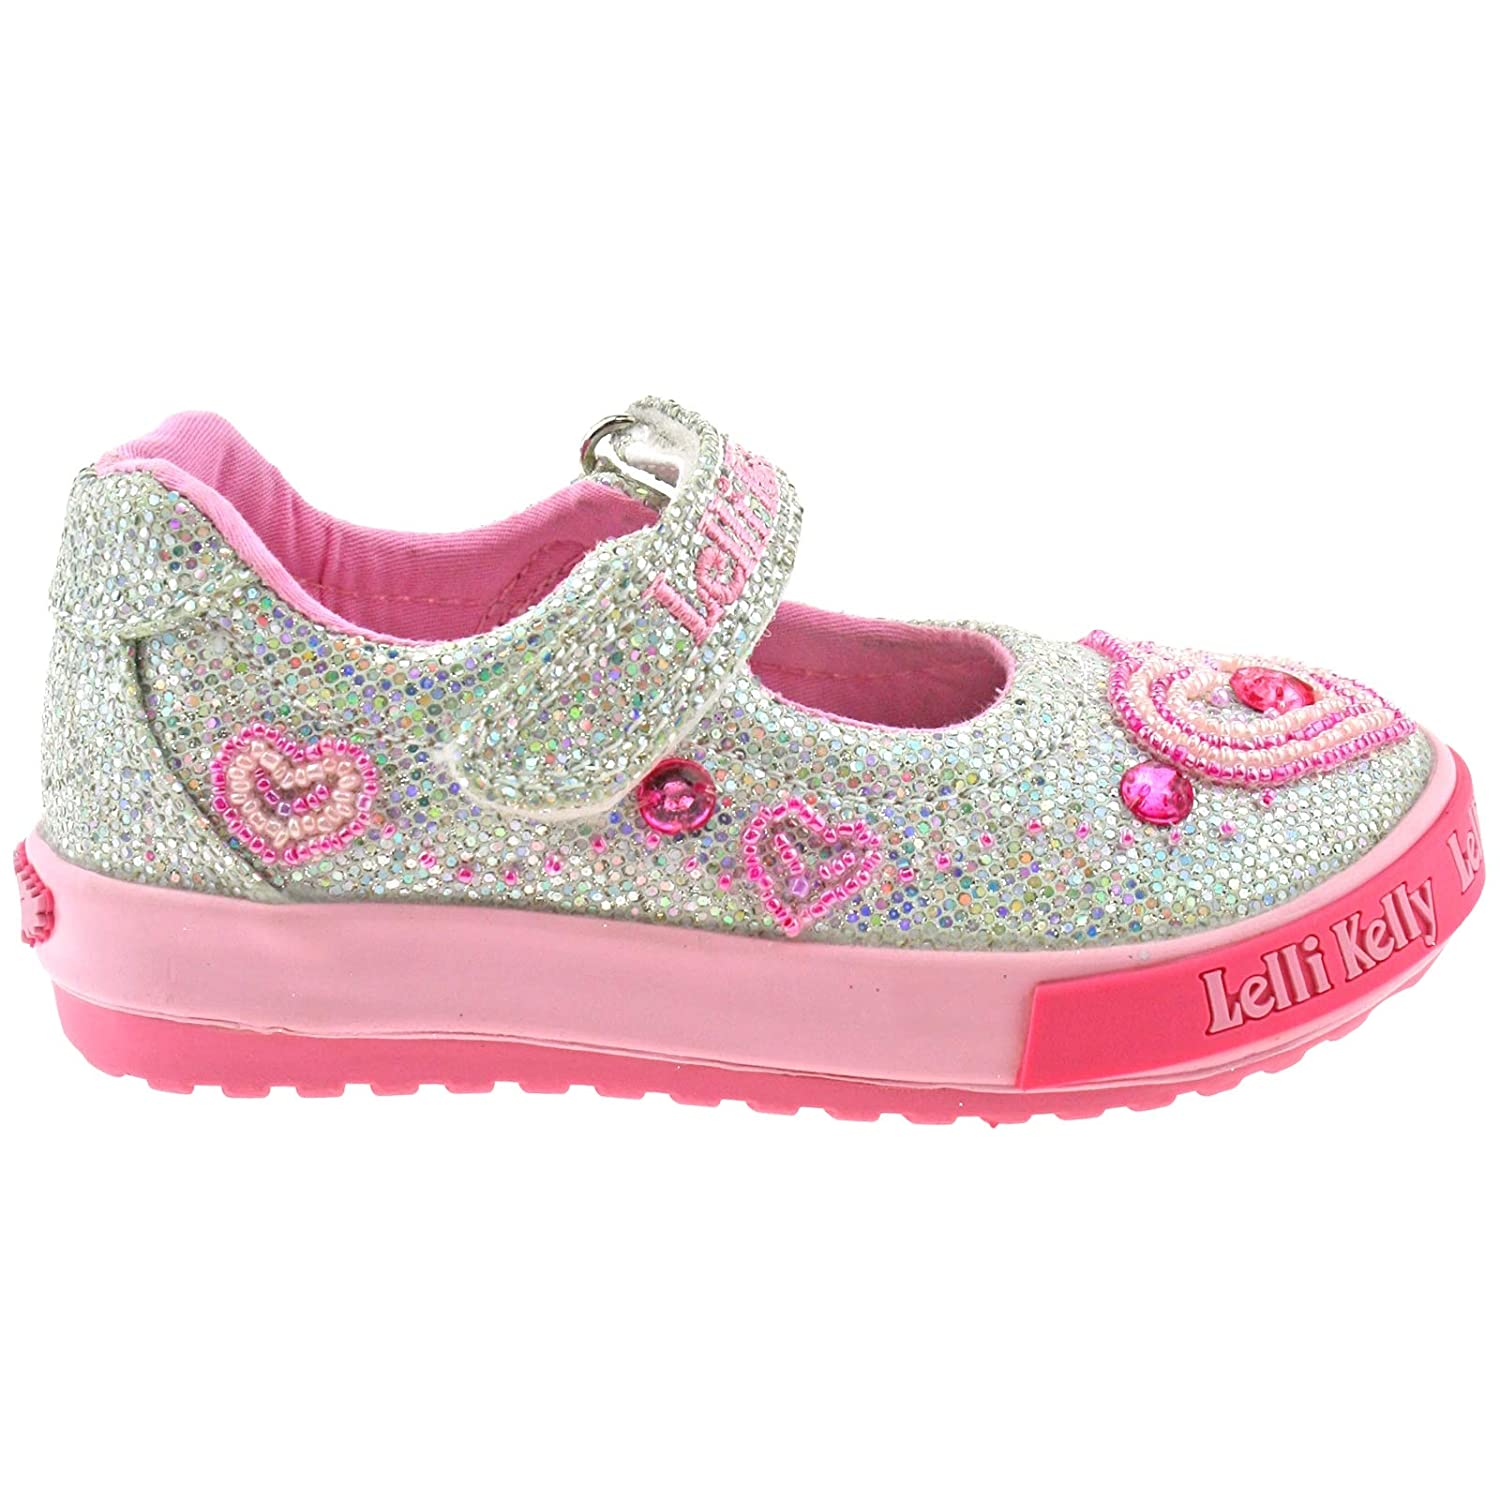 50625fabd Lelli Kelly LK3010 (GH01) Silver Glitter Ava Baby Dolly Shoes -21 (UK 5):  Amazon.co.uk: Shoes & Bags